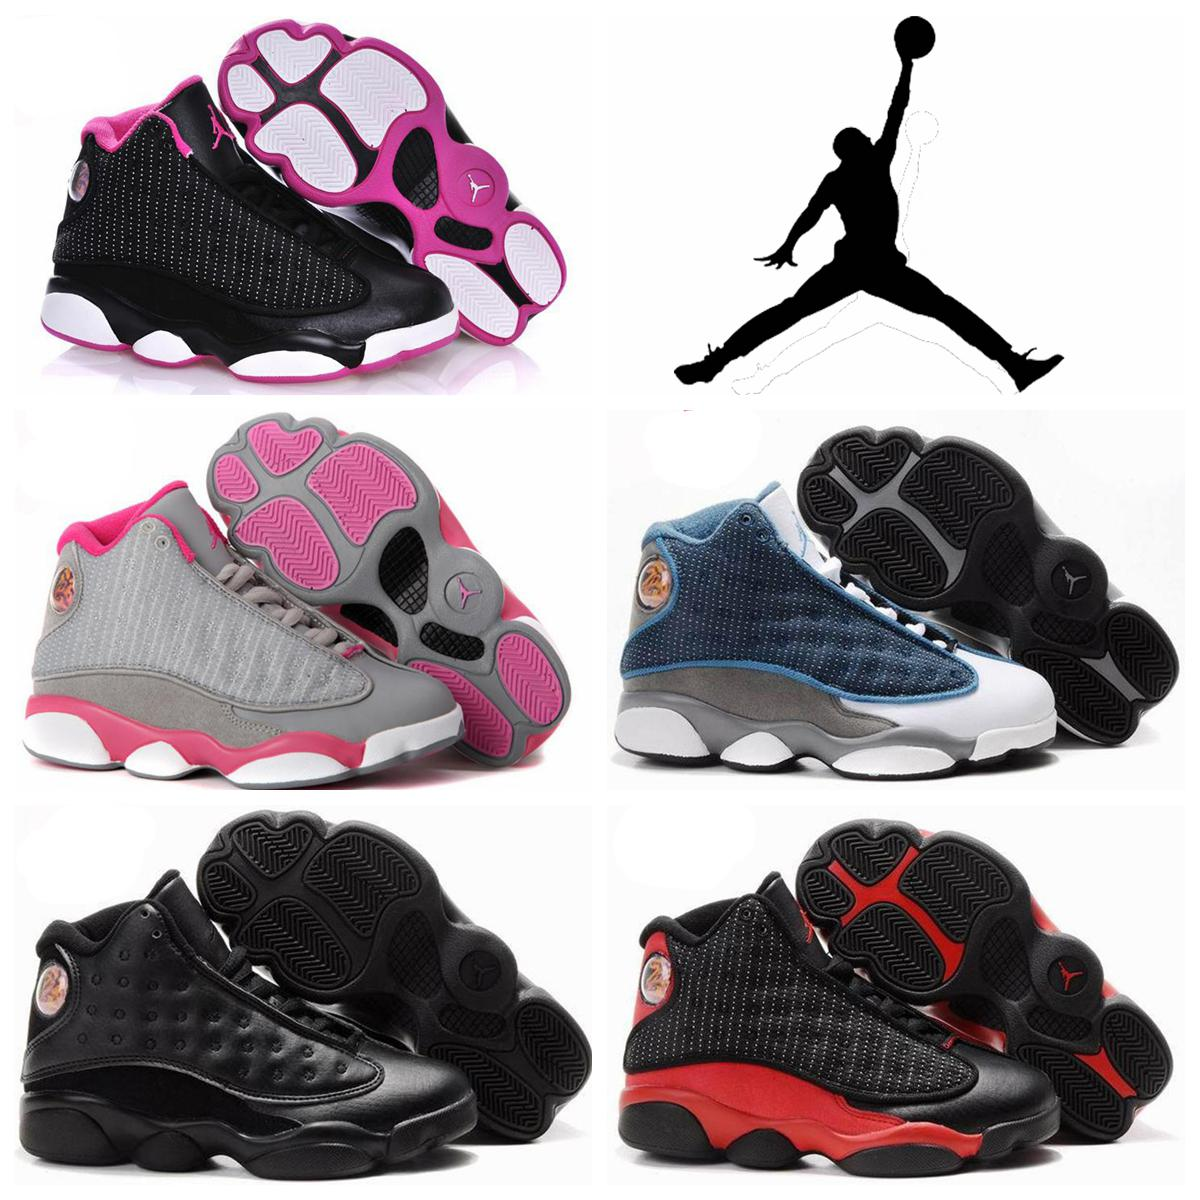 2016 New Nike Air Jordan 13 Xiii Retro Childrens Shoes Boys Girls  Basketball Shoes Kids High Quality Athletic Babys Trainers Cheap Size 11c  Toddler Boys ...